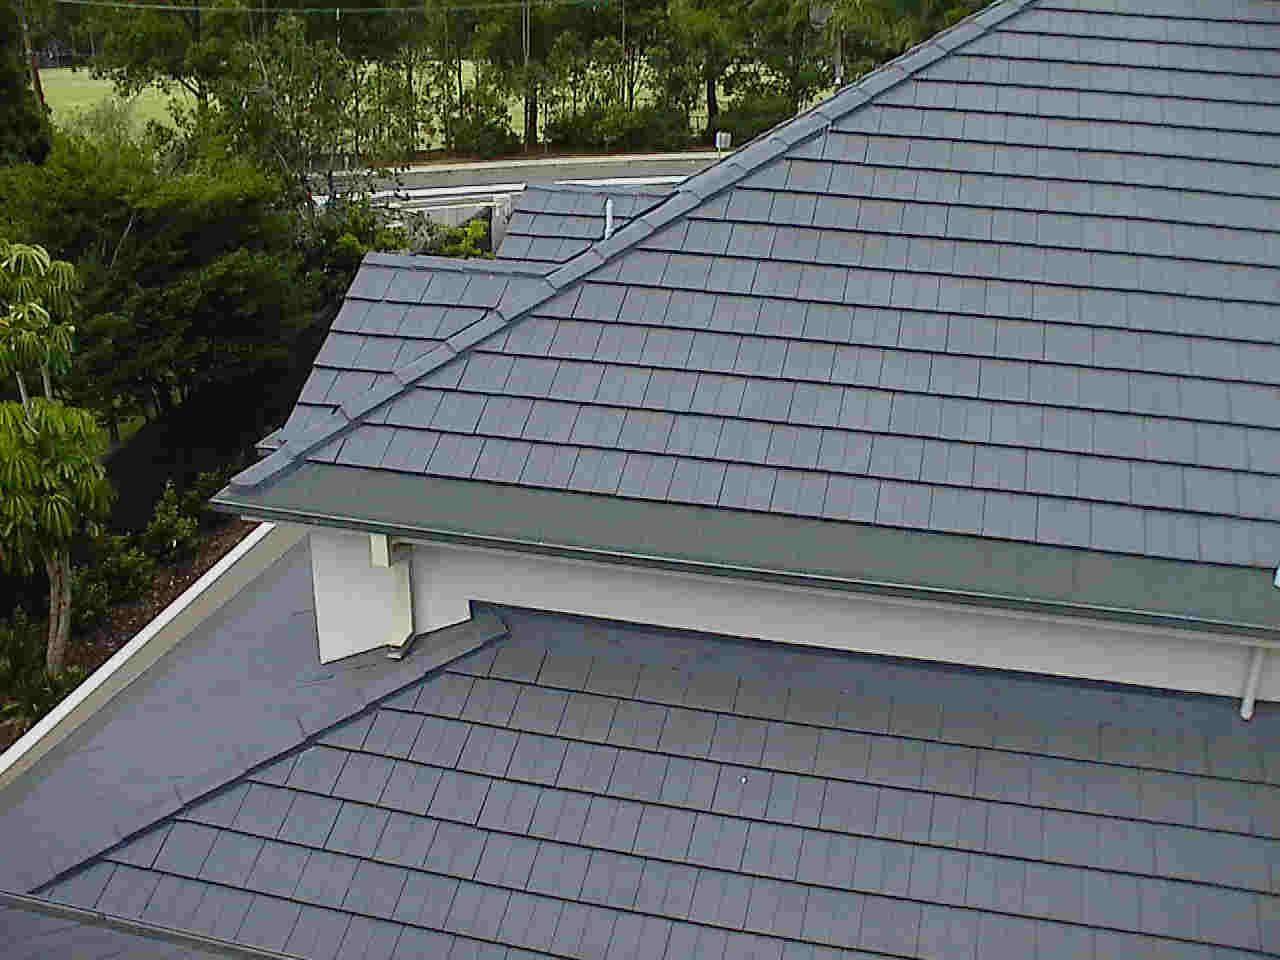 The 10 best roofing materials for warm climates the for Roofing material options